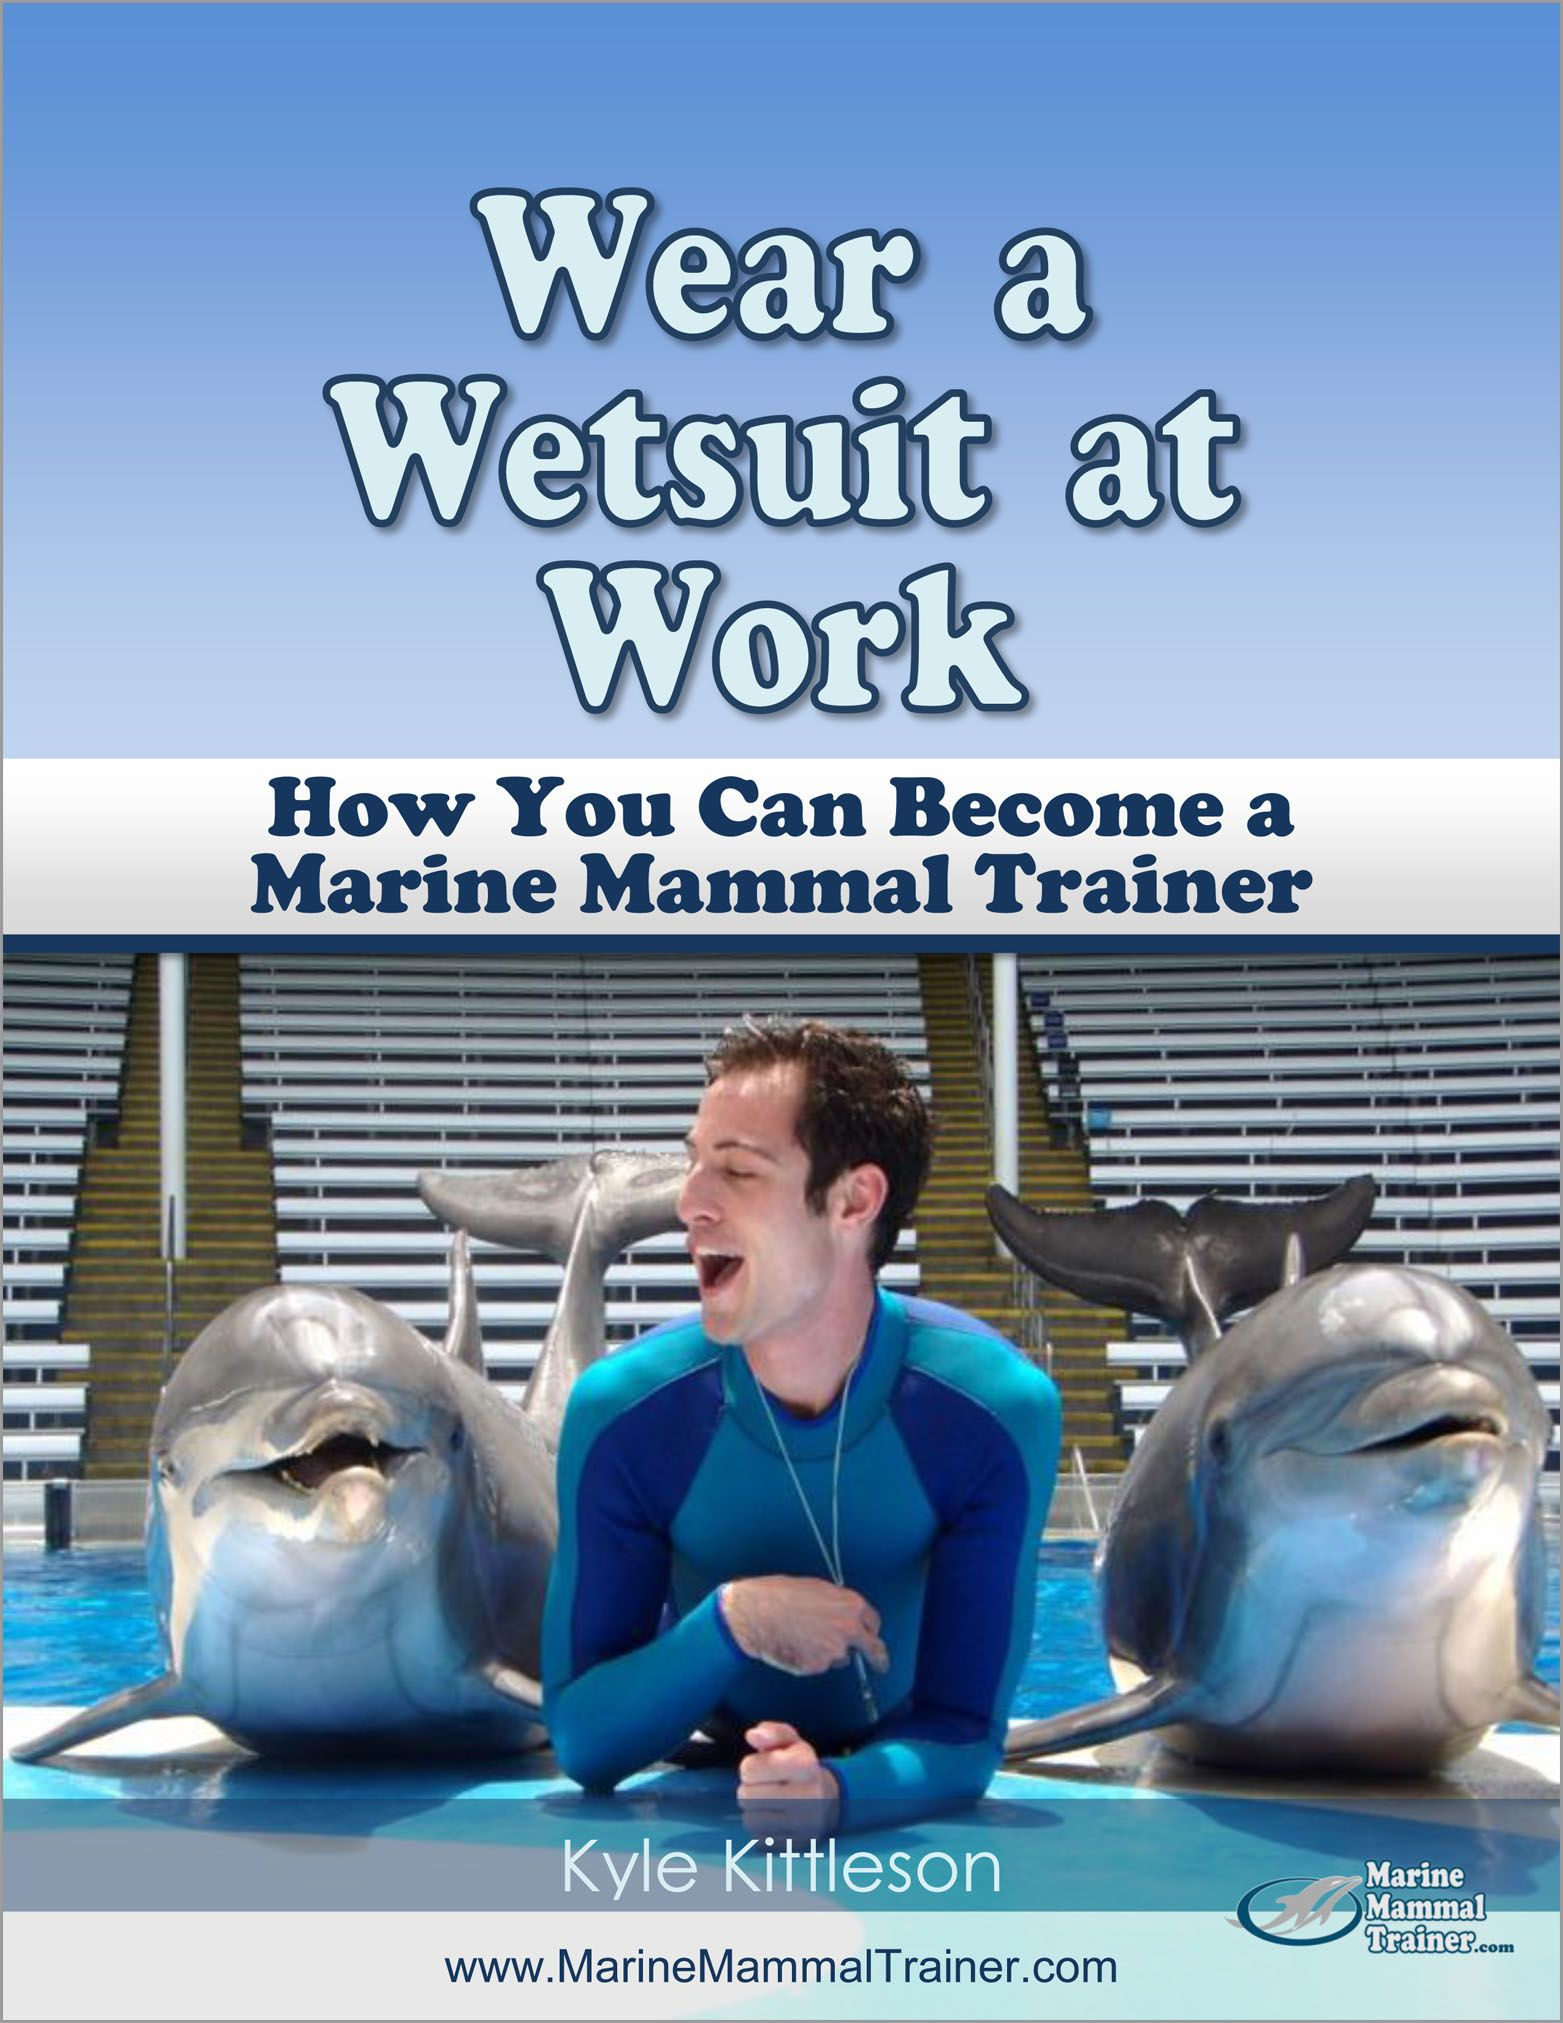 I am interested in being a Killer Whale trainer?